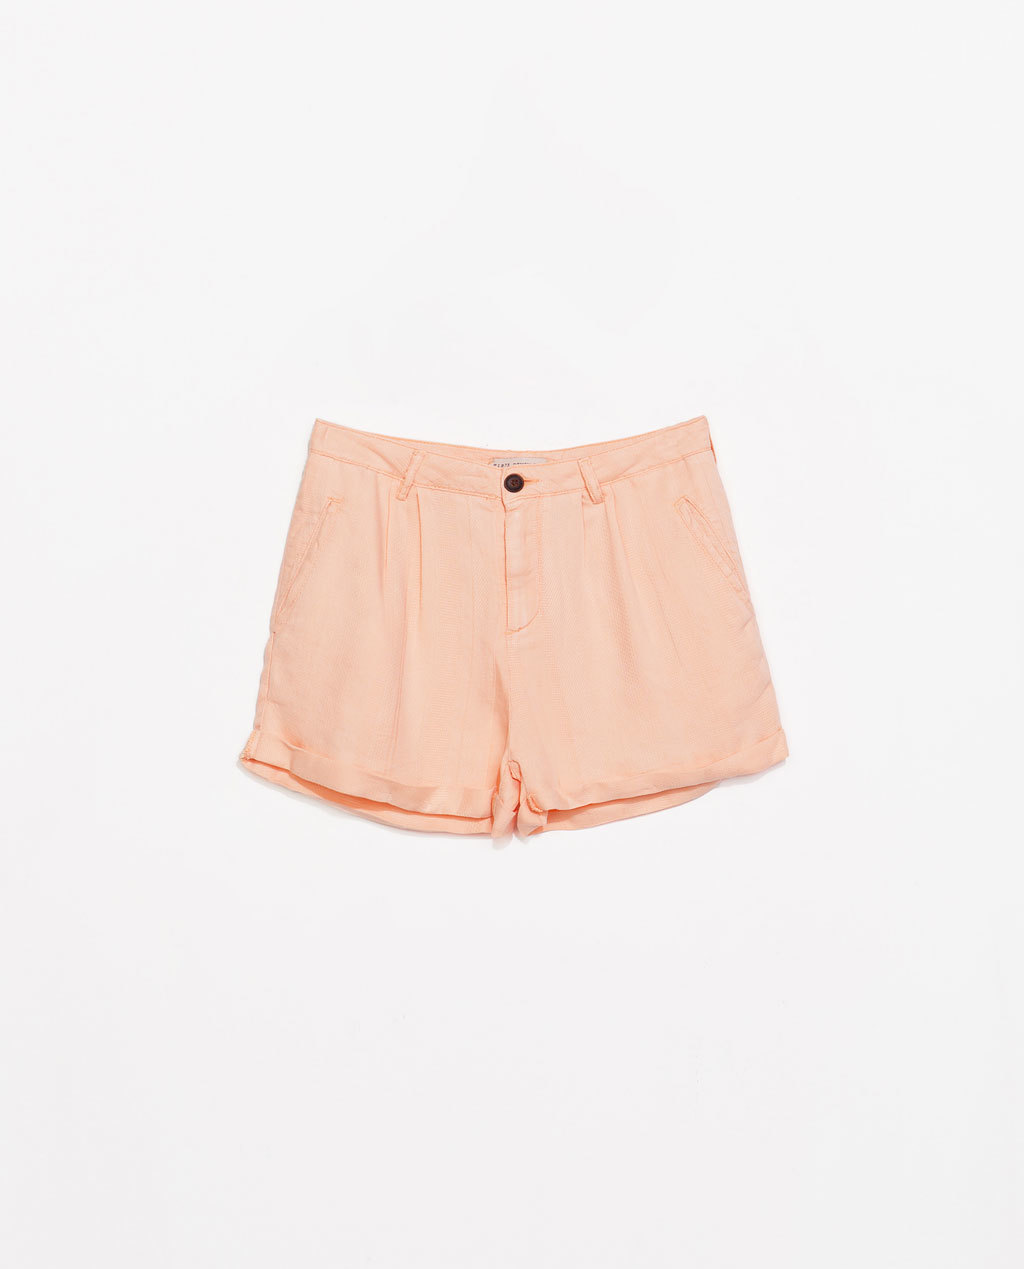 Jacquard Bermudas - pattern: plain; waist: mid/regular rise; predominant colour: nude; occasions: casual, holiday; fibres: linen - mix; pattern type: fabric; texture group: brocade/jacquard; season: s/s 2014; style: shorts; length: short shorts; fit: slim leg